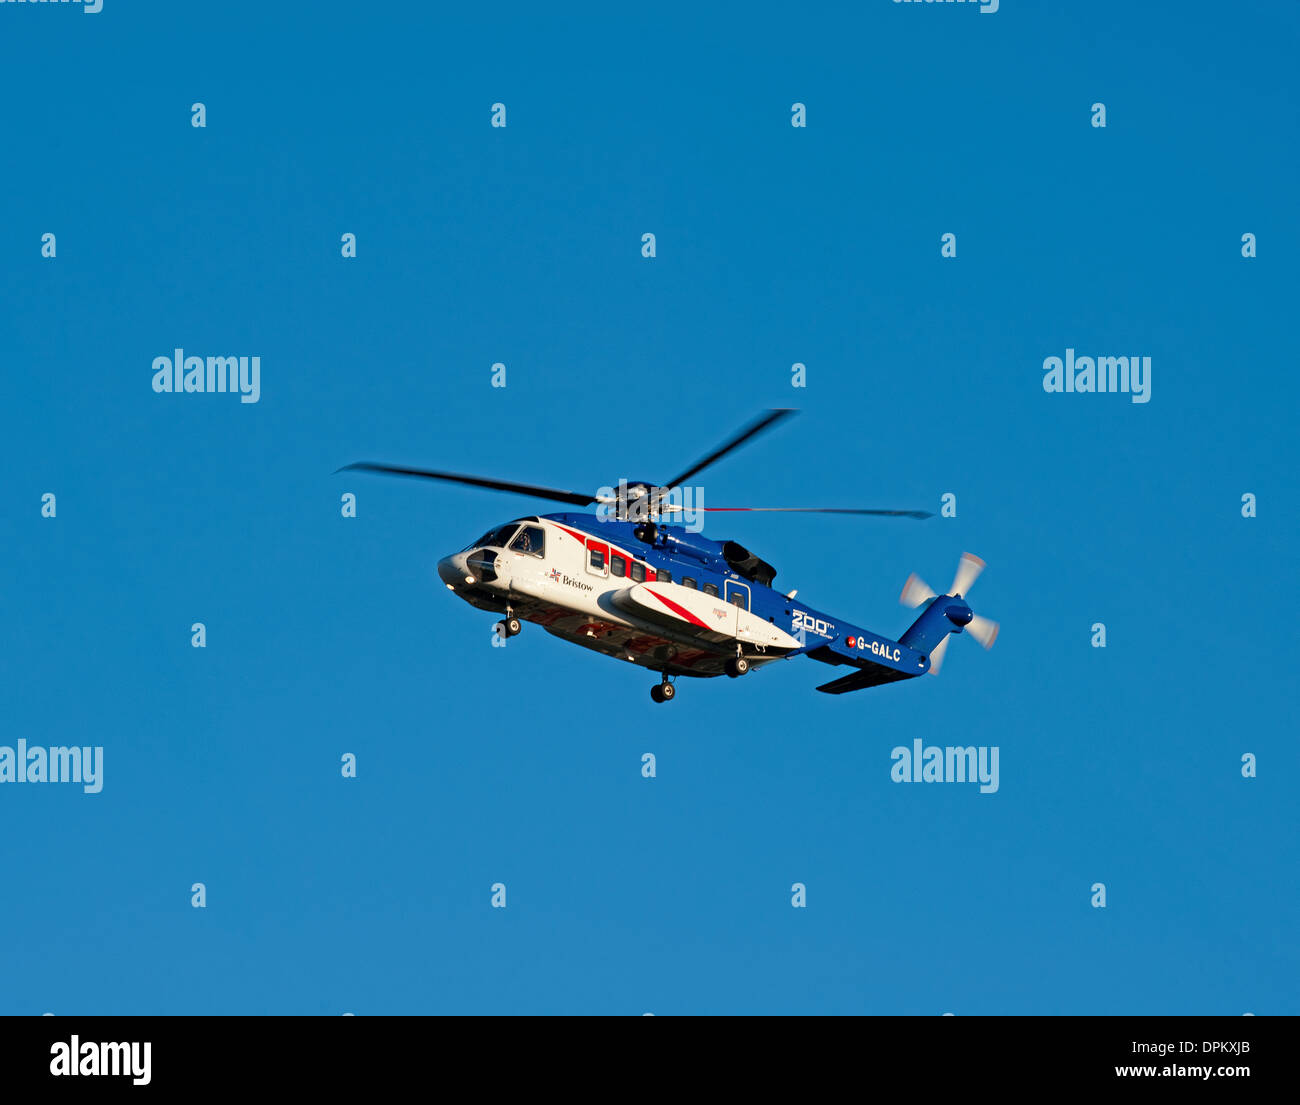 Bristow Helicopter G-GALC Sikorsky S92 approaching Aberdeen Airport.  SCO 9201 - Stock Image